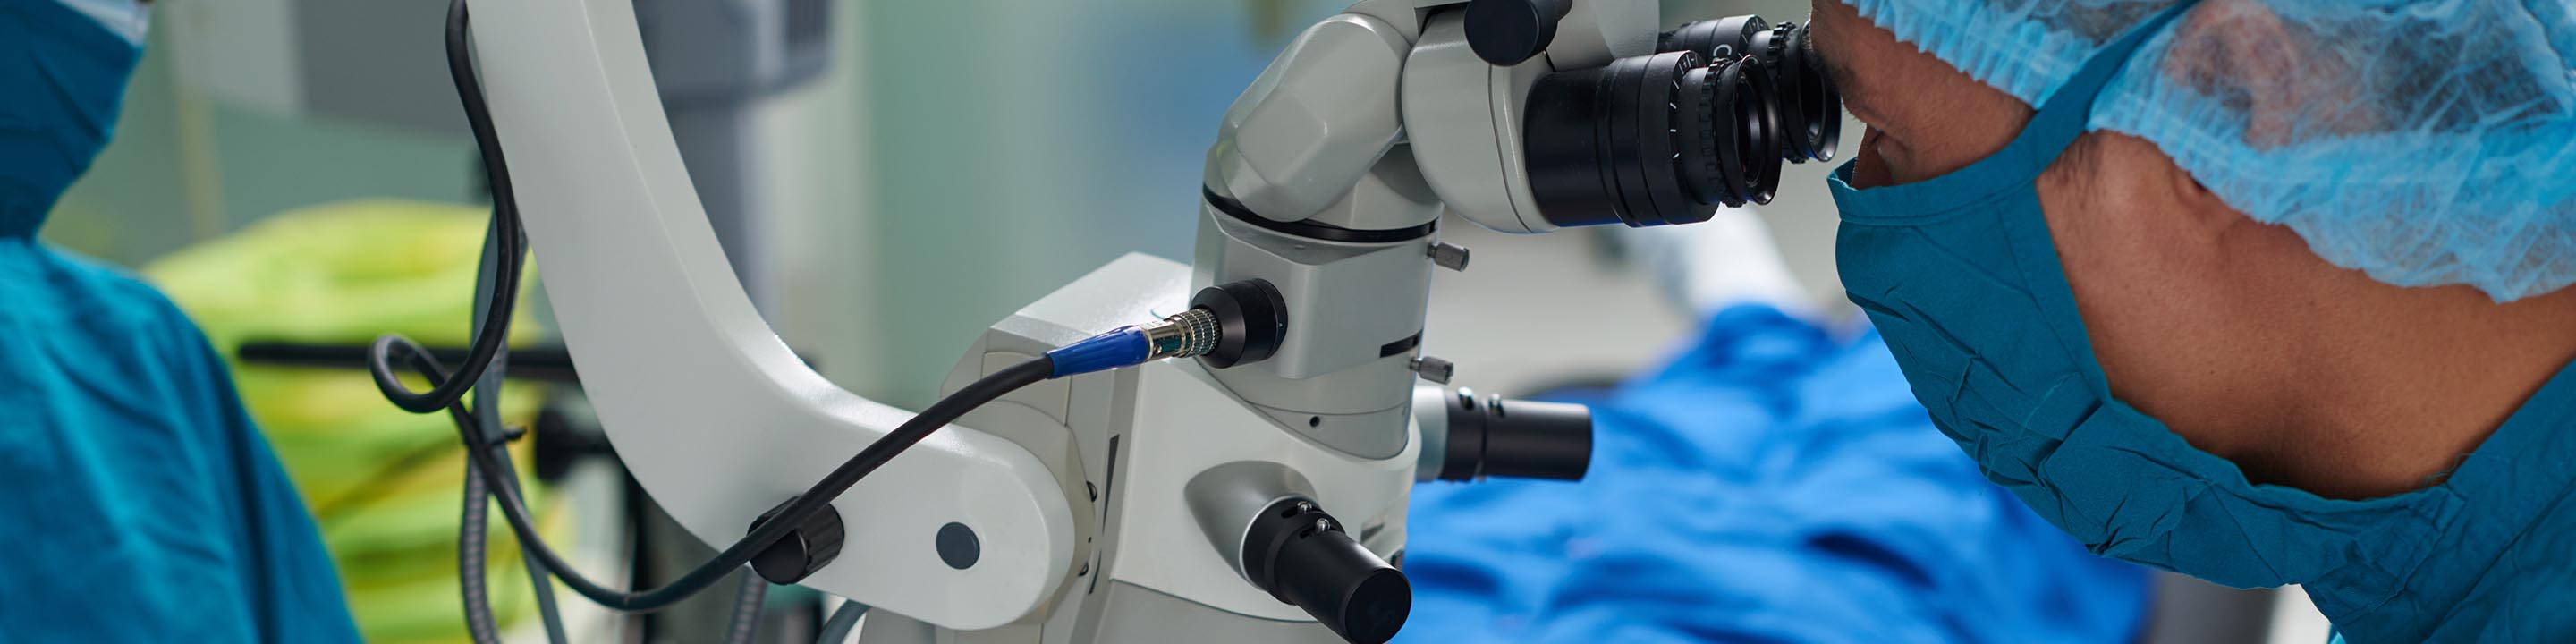 Image of doctor using laser equipment for eye surgery.